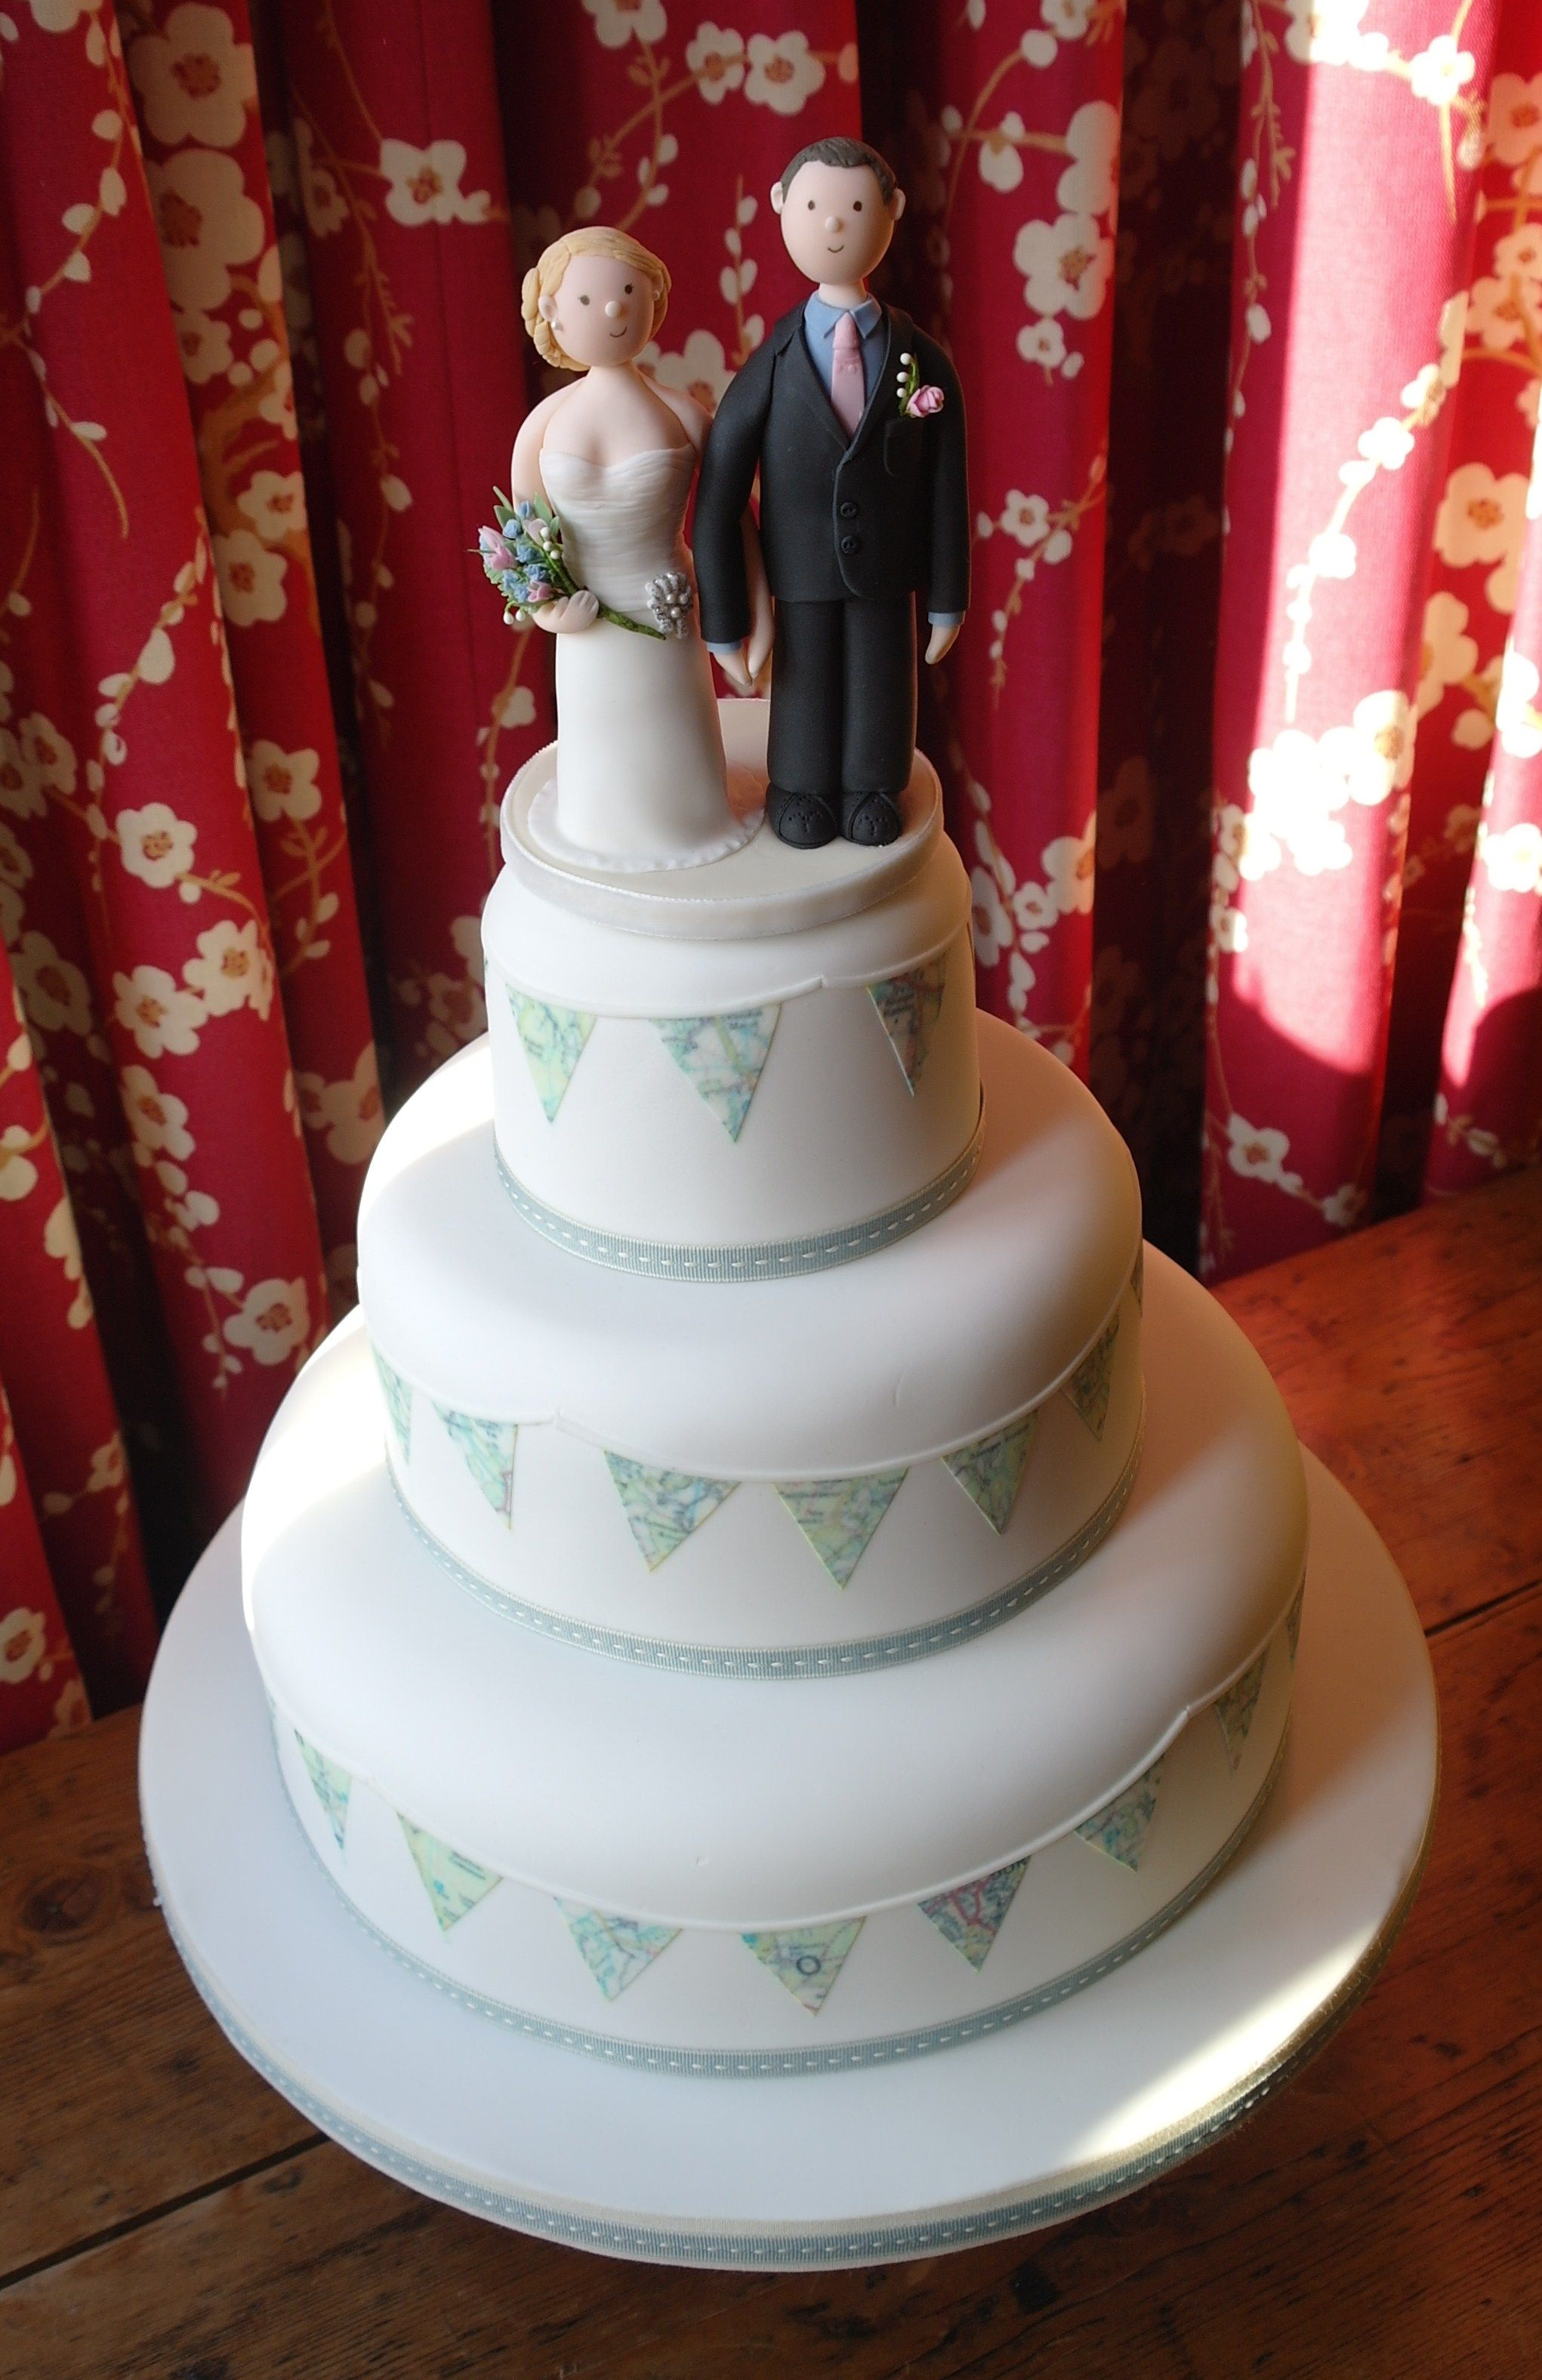 Three tier wedding cake with bunting side design made from local map